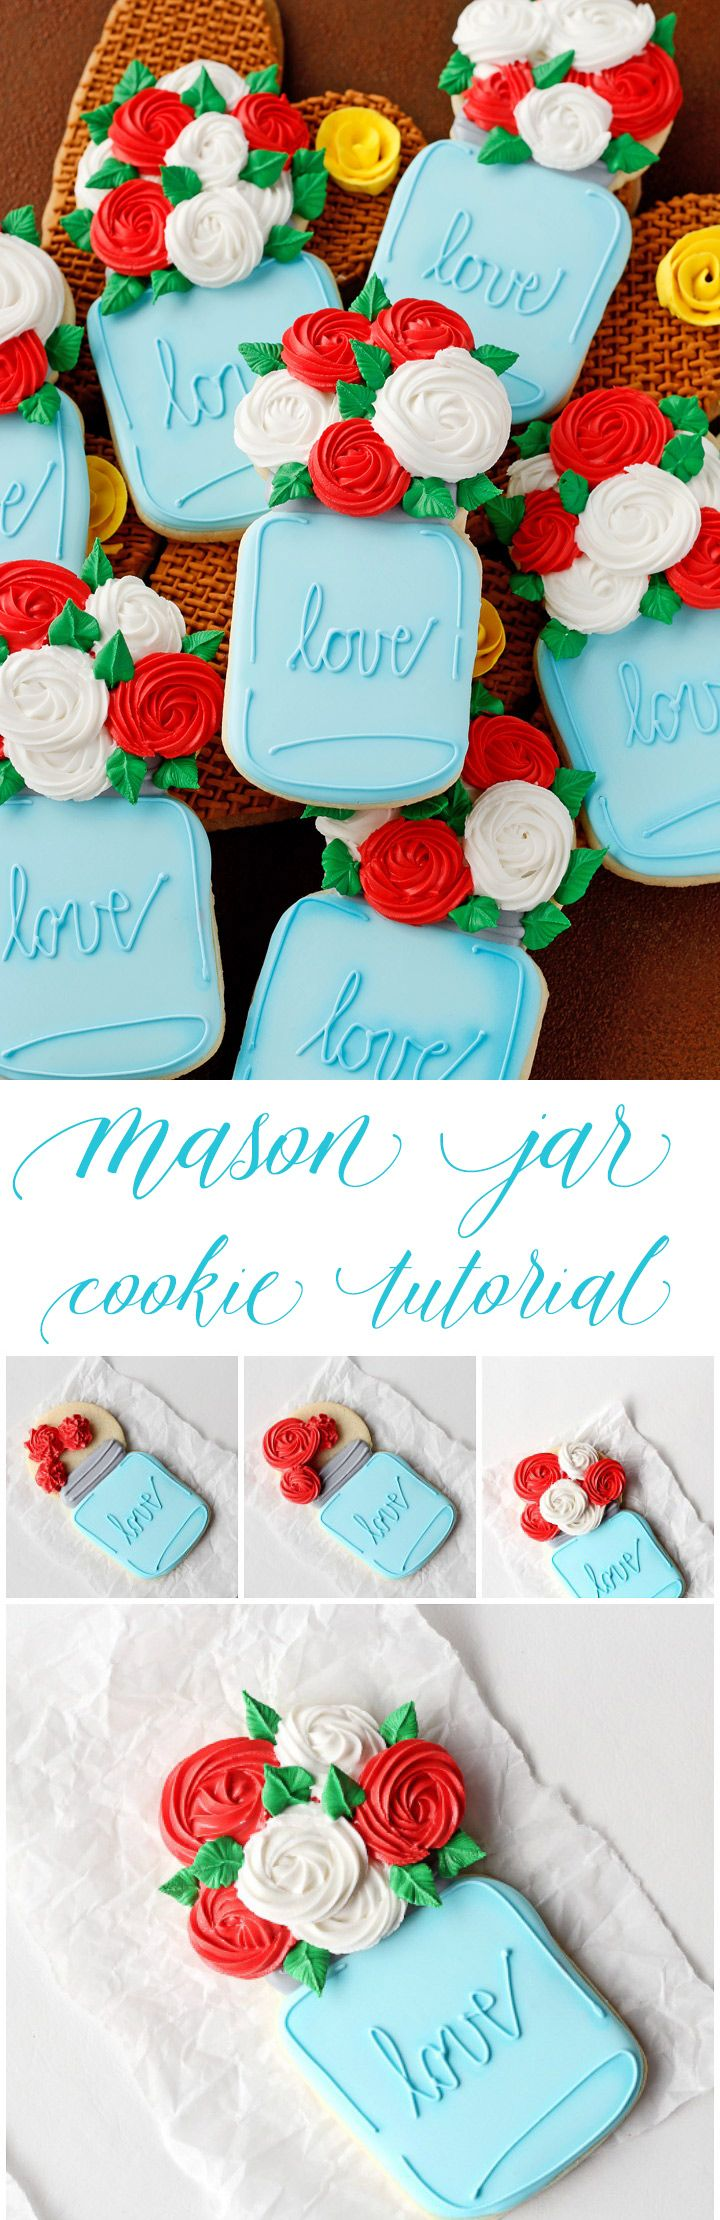 How to Decorate Mason Jar Cookies with a How to Video | The Bearfoot Baker